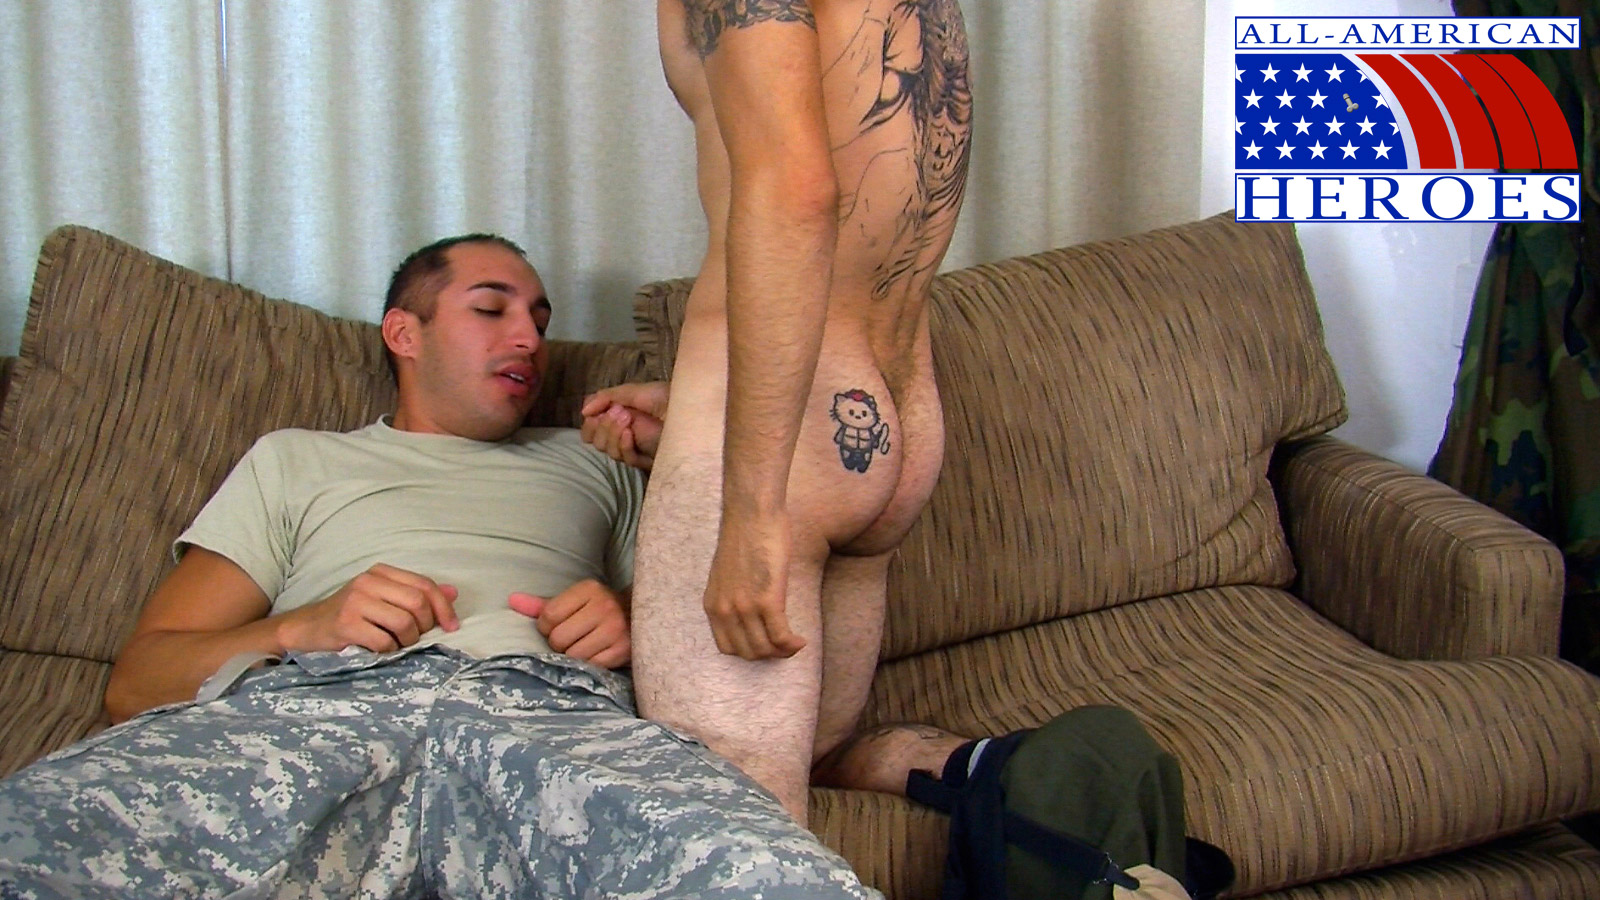 All-American-Heroes-LANCE-CORPORAL-MORGIES-FIRST-GAY-BLOWJOB-12 Real Straight Marine Gets His First Blowjob From Another Marine